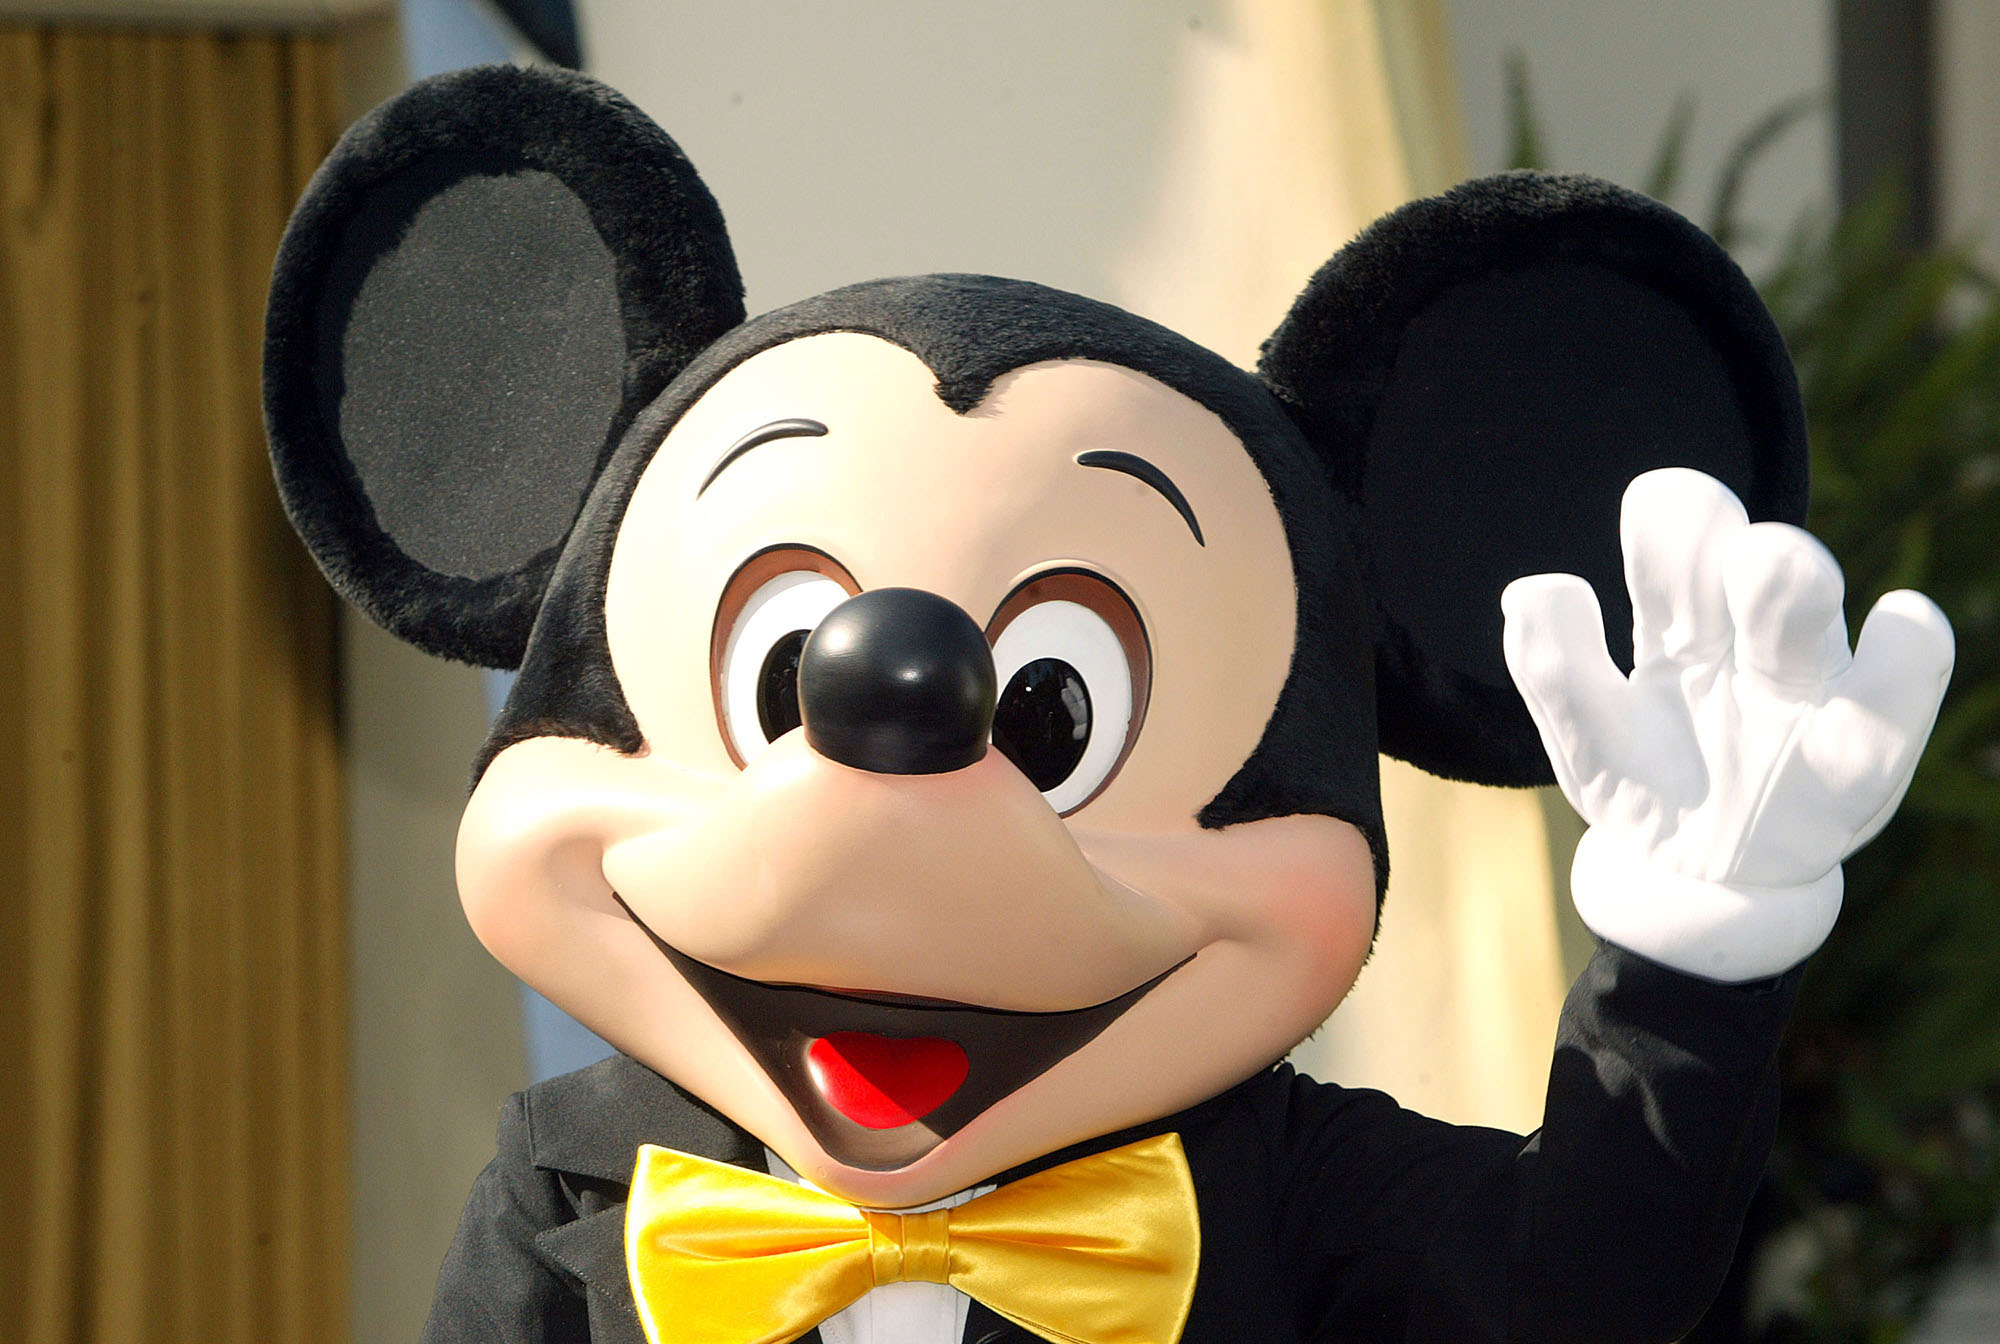 Rhode Island mistakenly issued tax refund checks signed by Walt Disney and Mickey Mouse